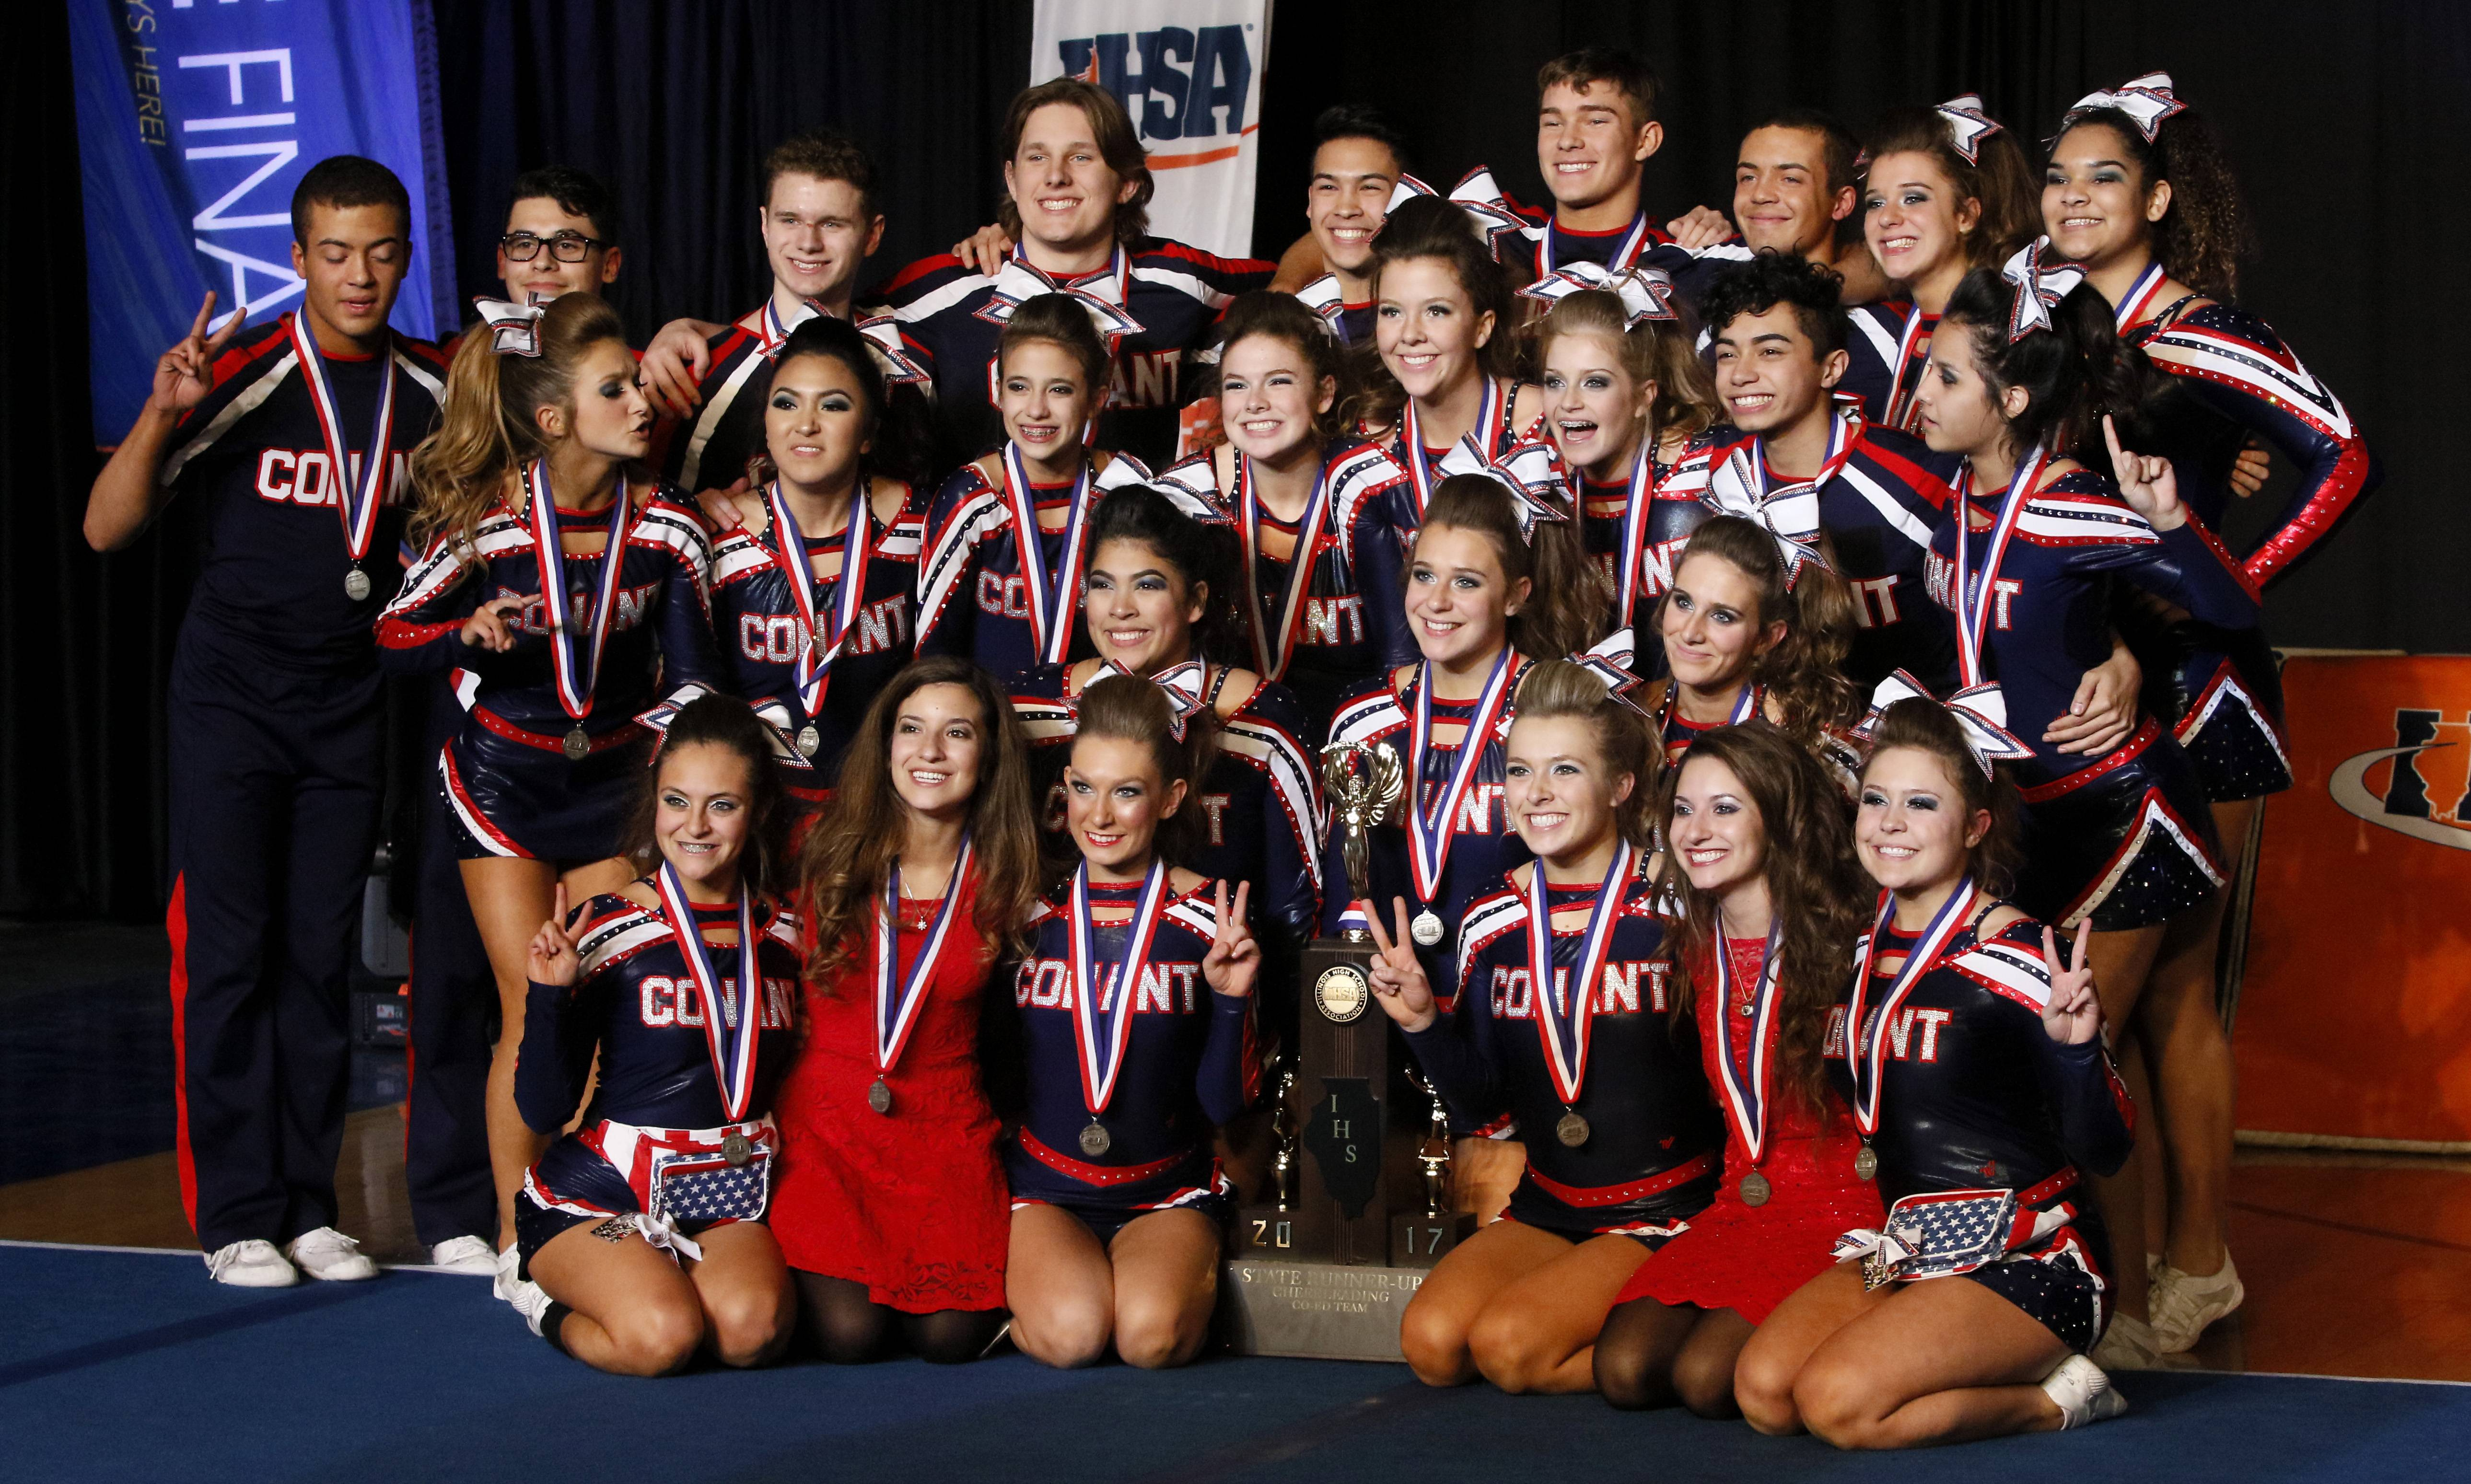 Conant cheerleaders took home a second-place trophy Saturday at the state championships.